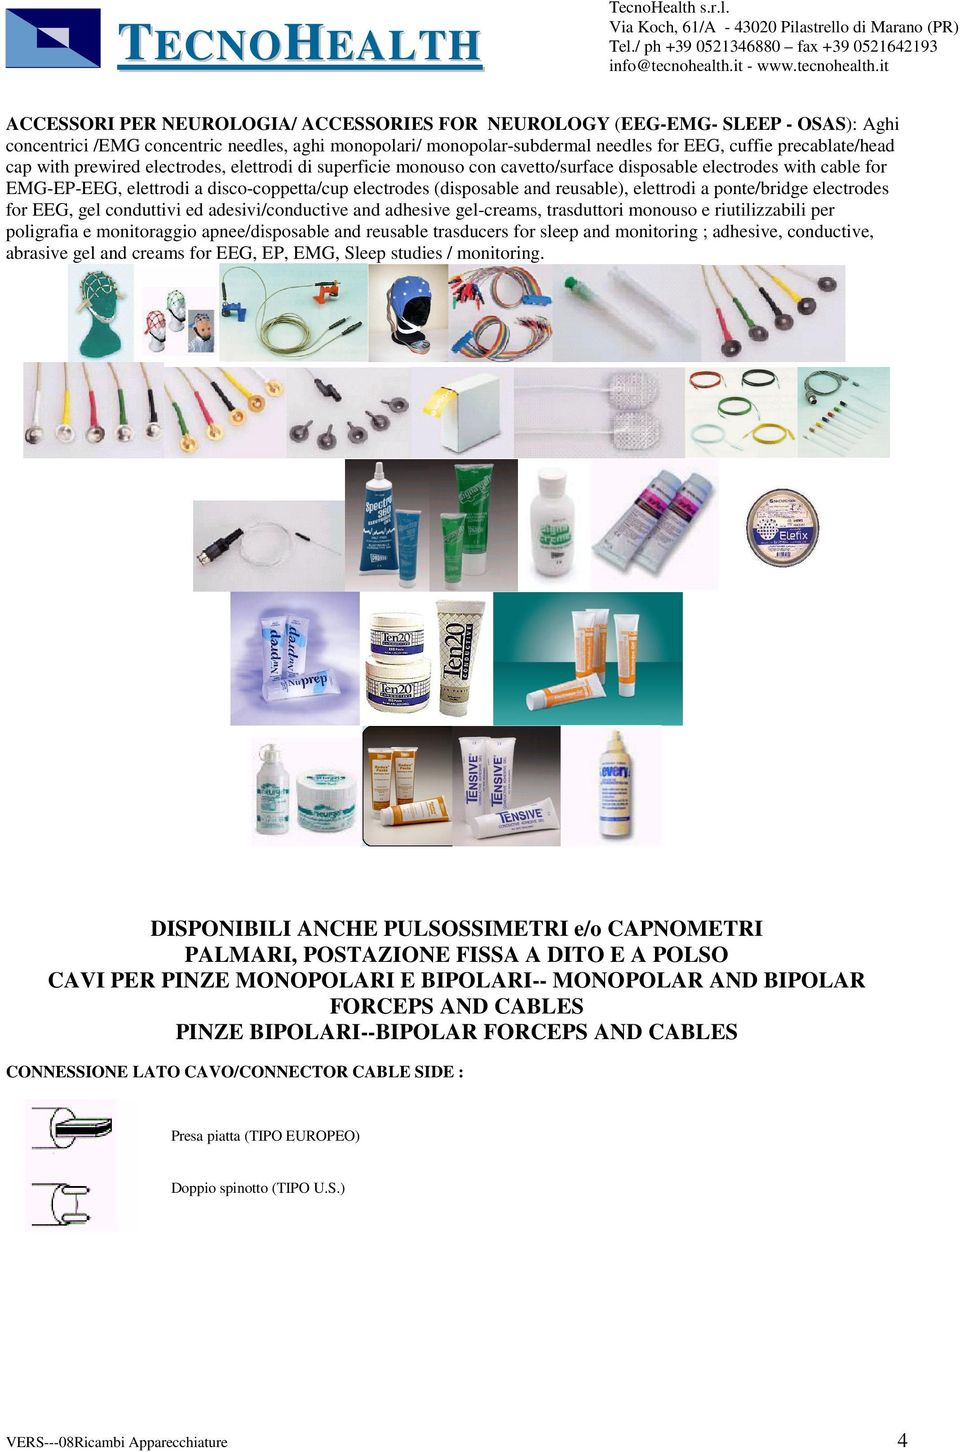 elettrodi a ponte/bridge electrodes for EEG, gel conduttivi ed adesivi/conductive and adhesive gel-creams, trasduttori monouso e riutilizzabili per poligrafia e monitoraggio apnee/disposable and